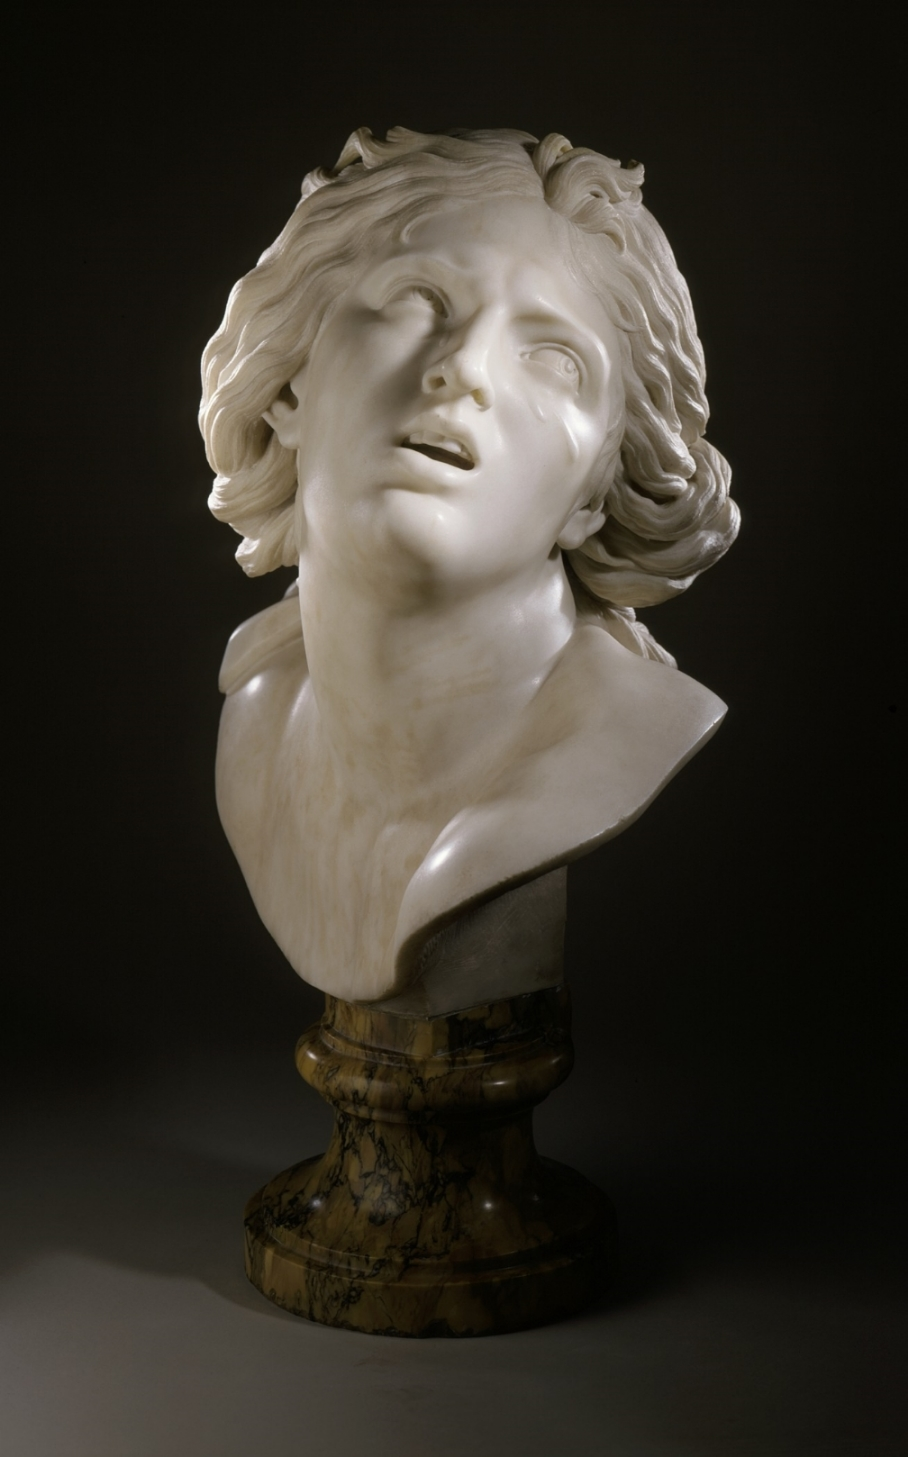 Head of Proserpina By Gianlorenzo Bernini (Italy, 1598-1690) [Public domain], via Wikimedia Commons